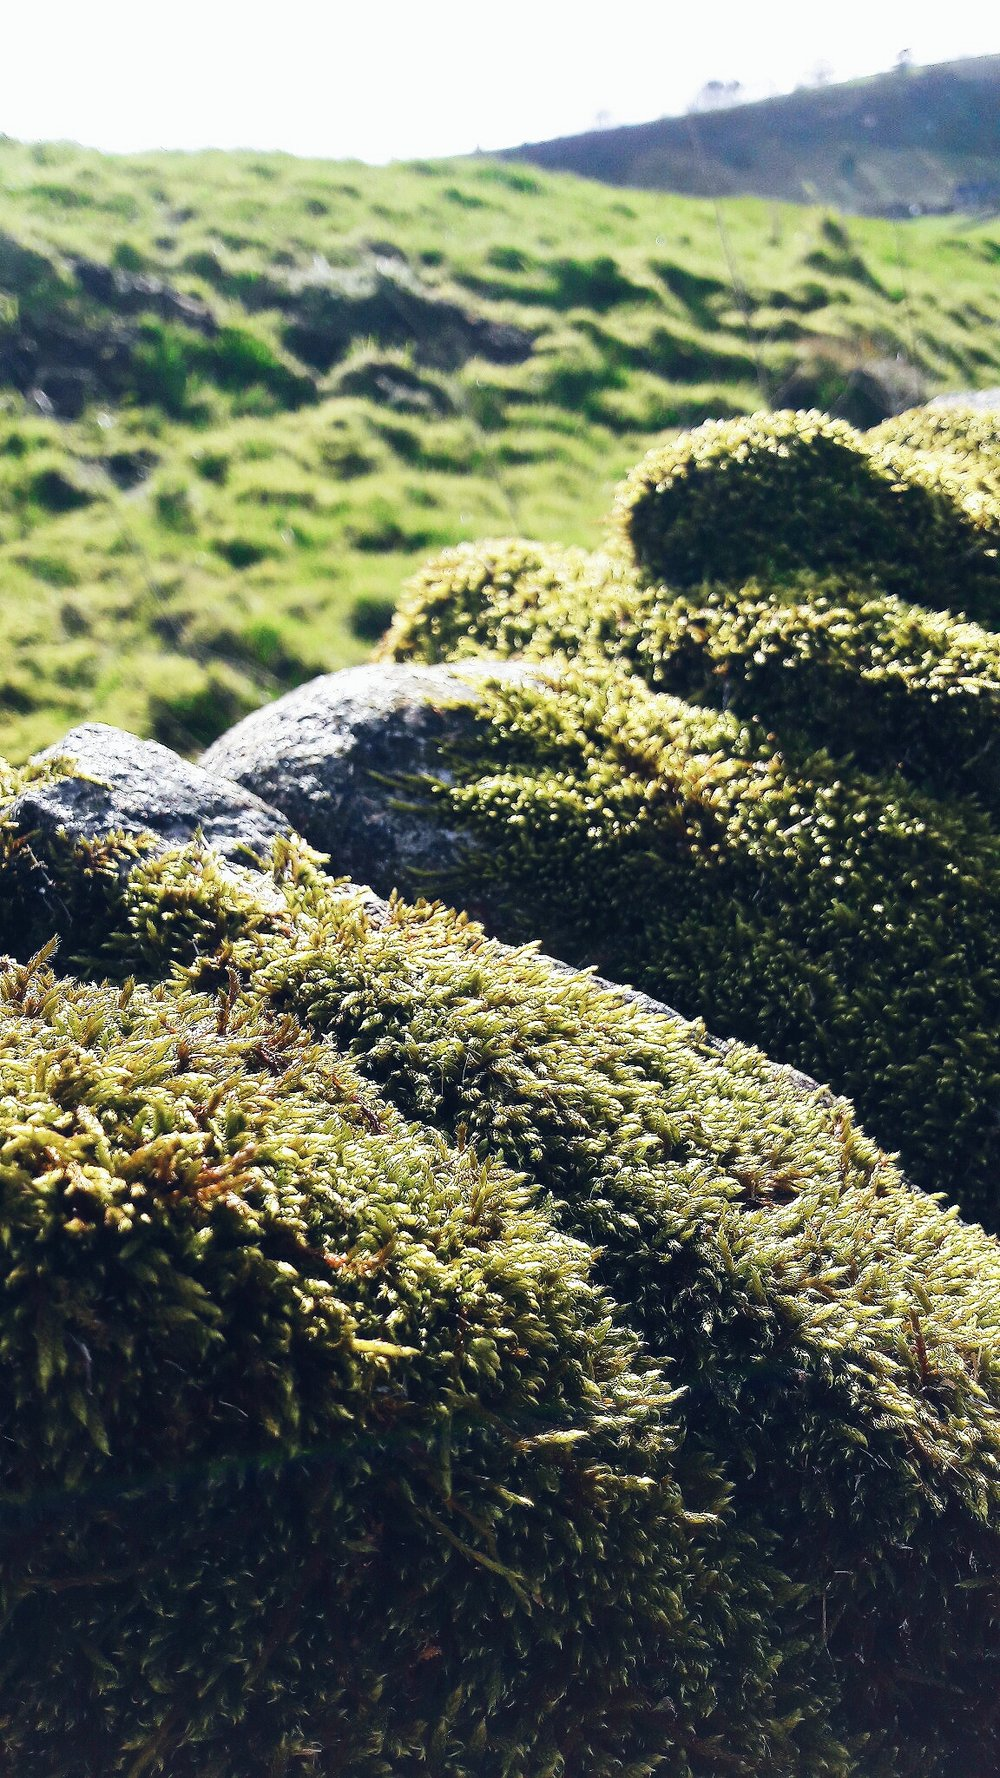 Moss on stone wall in Hollinsclough Village